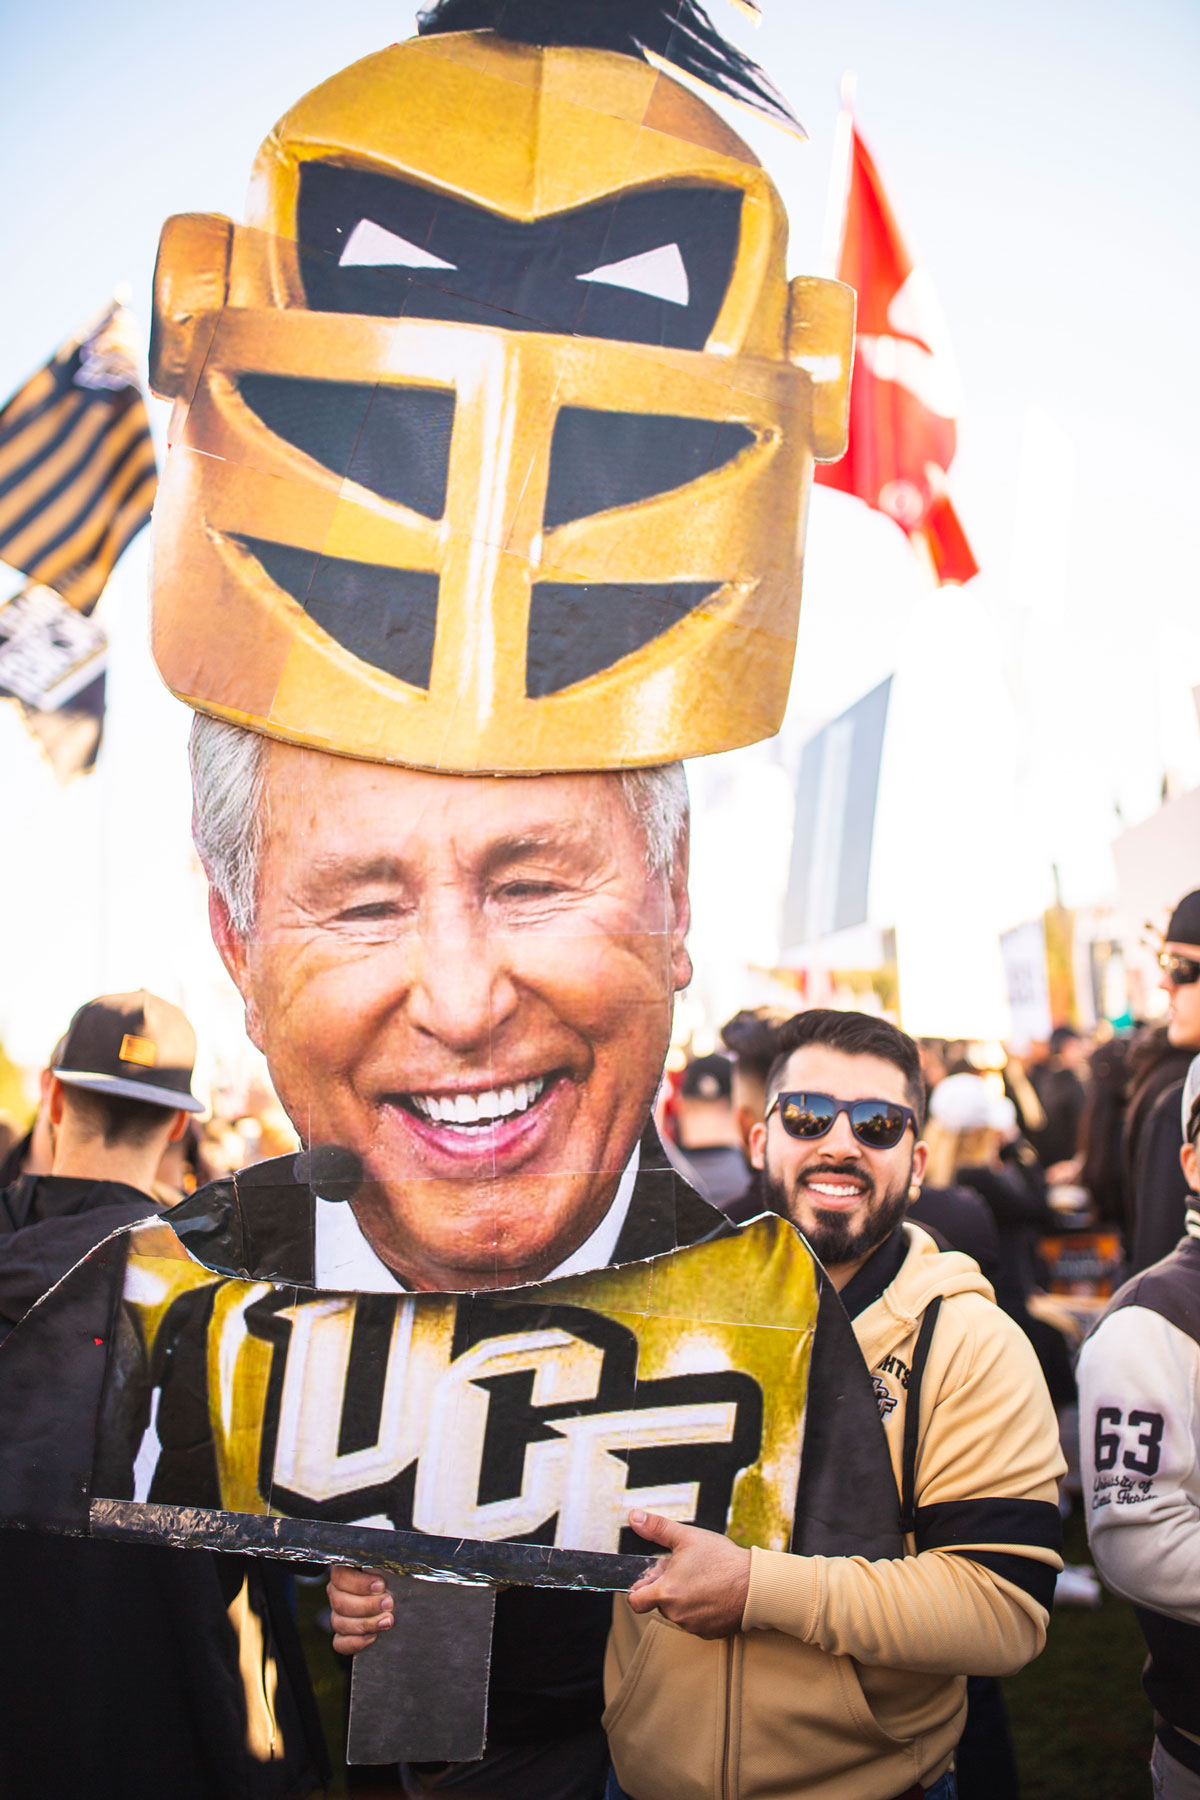 Man wearing a black and gold jersey holds a cutout of Lee Corso head with Knightro mask